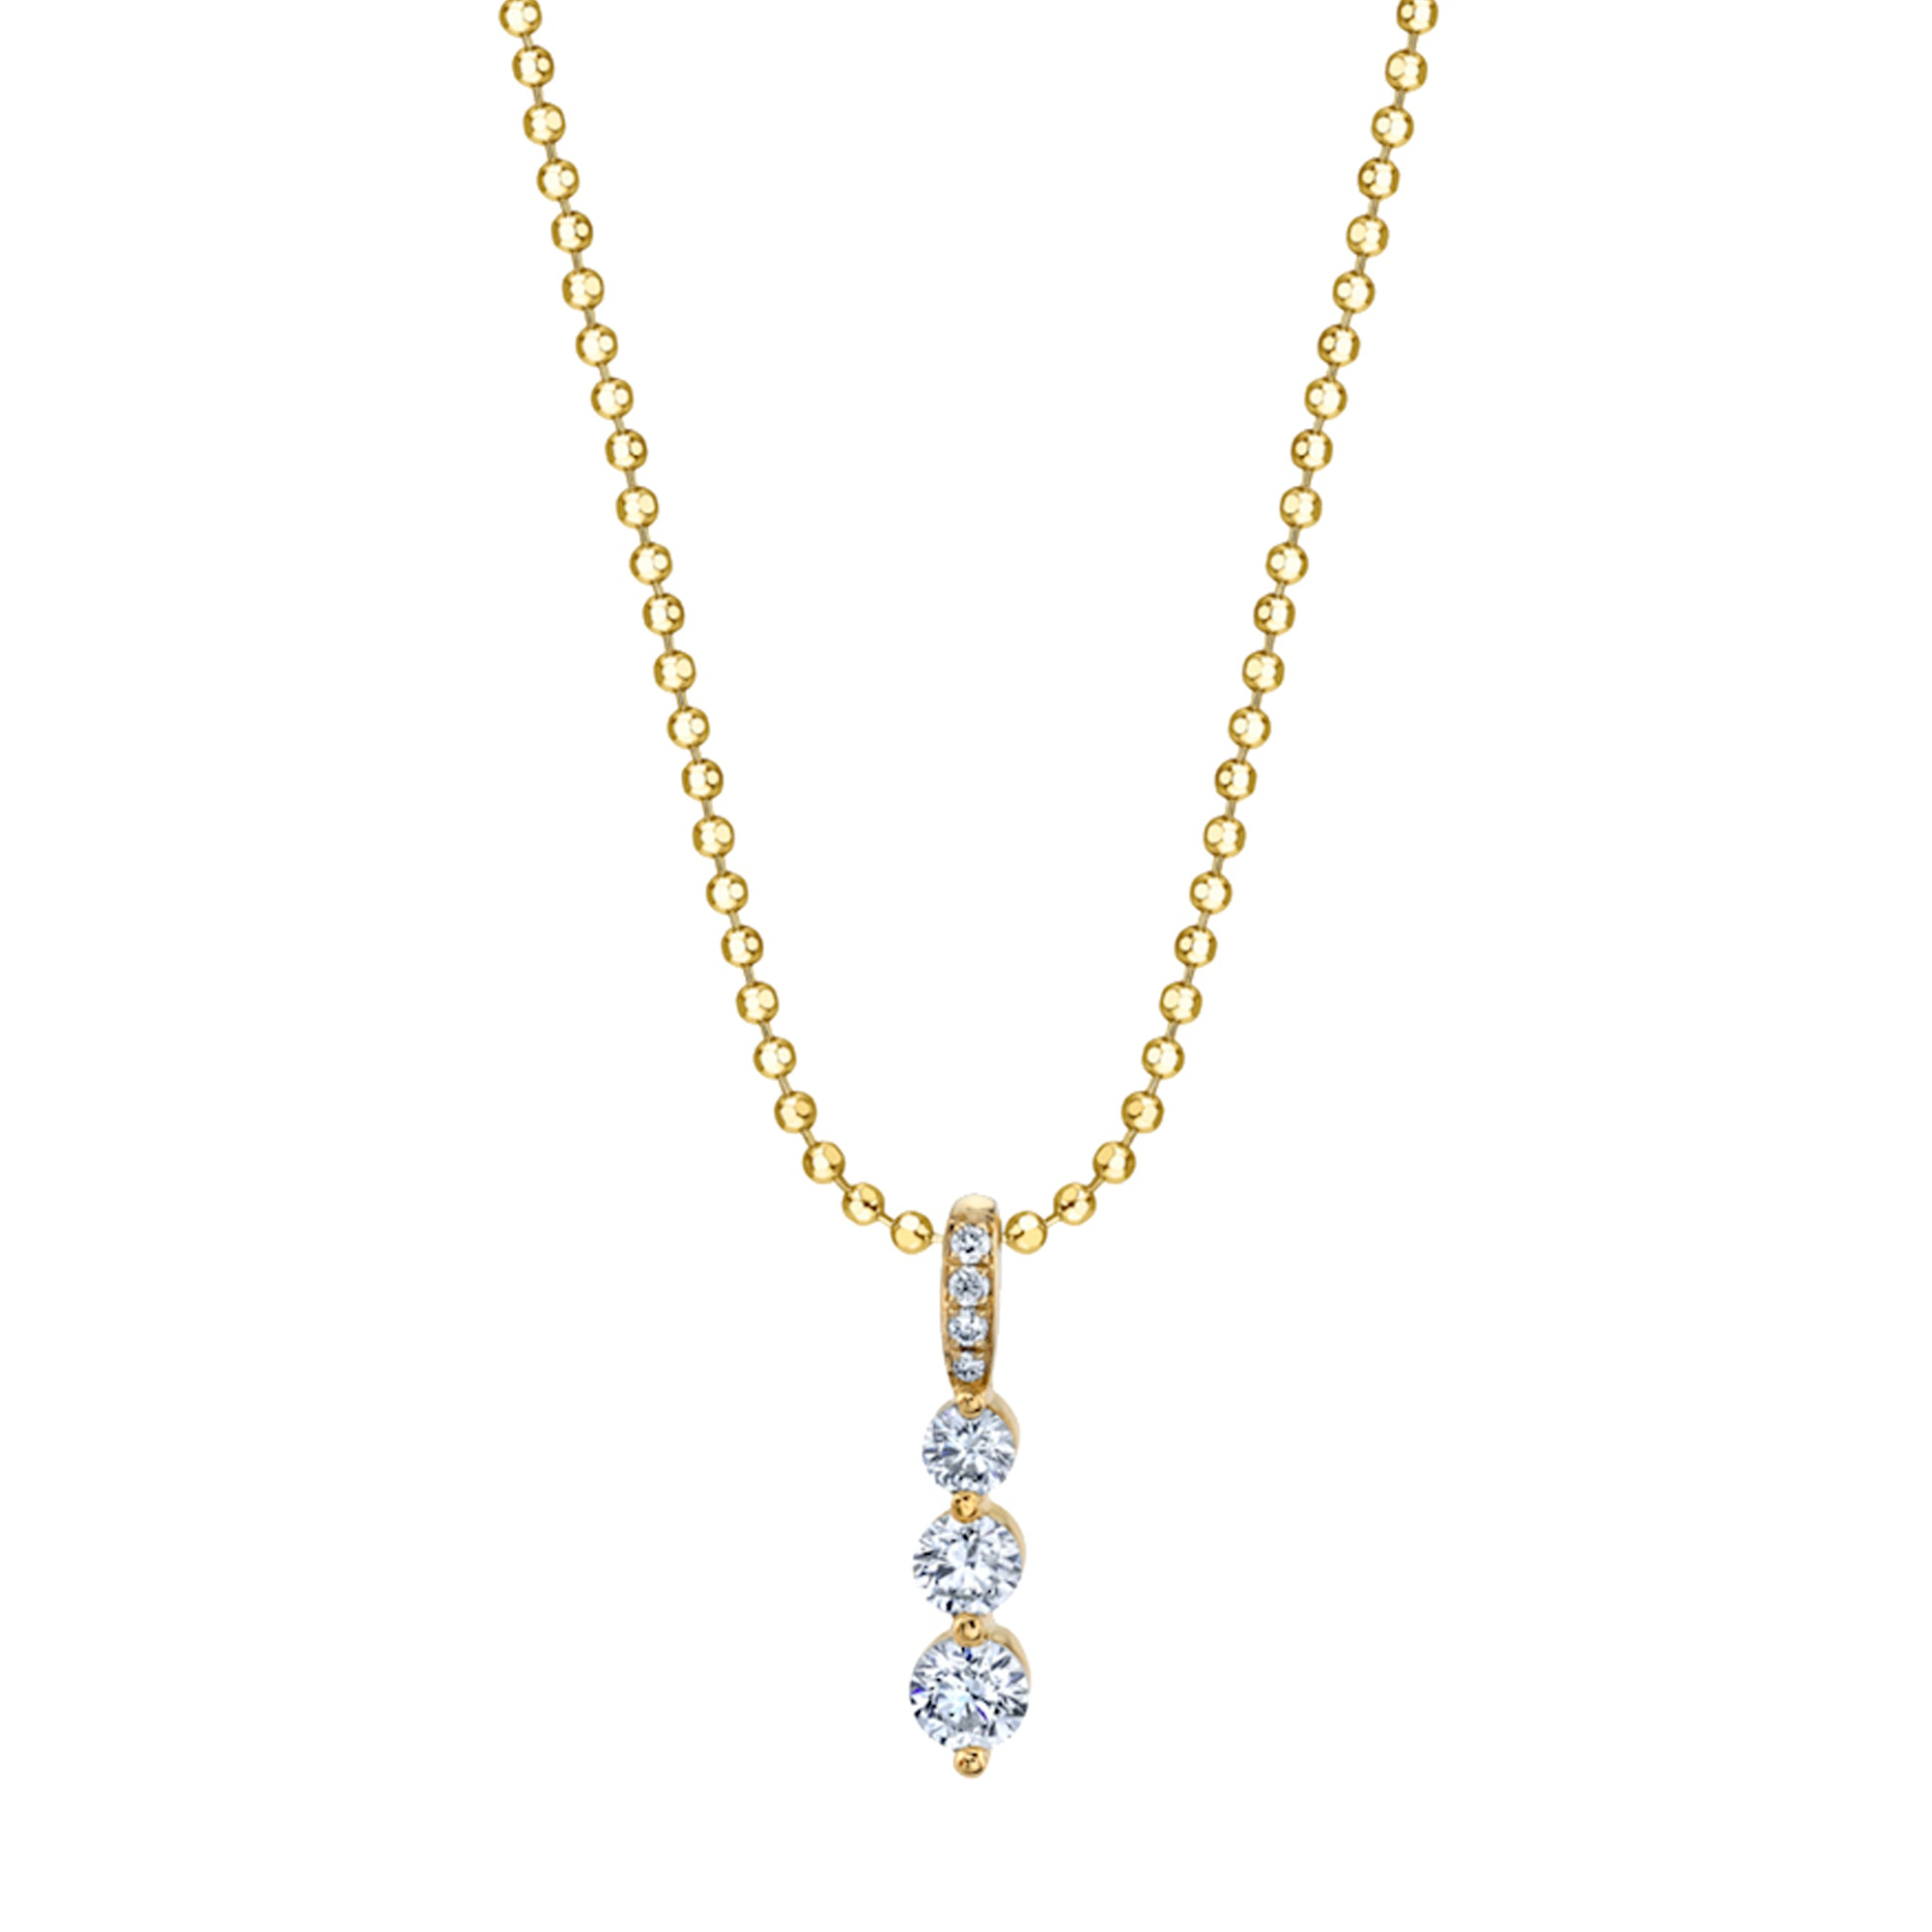 Anita Ko Small Diamond Twiggy Necklace - Yellow Gold - Necklaces - Broken English Jewelry